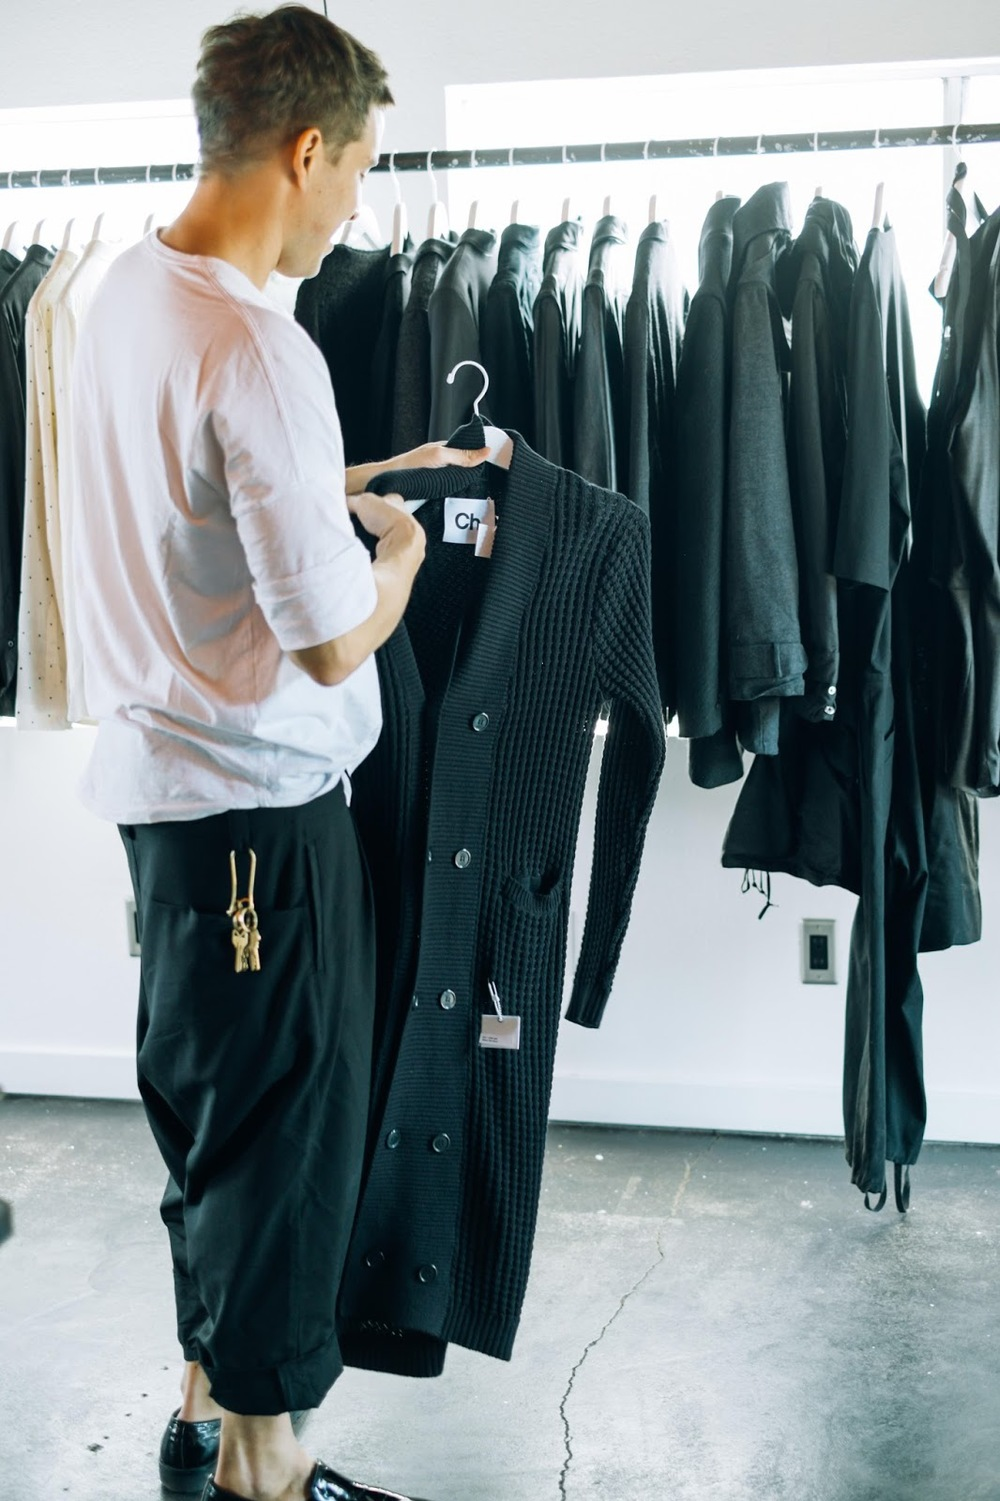 mybelonging-chapter-studio-menswear-losangeles-14.jpg